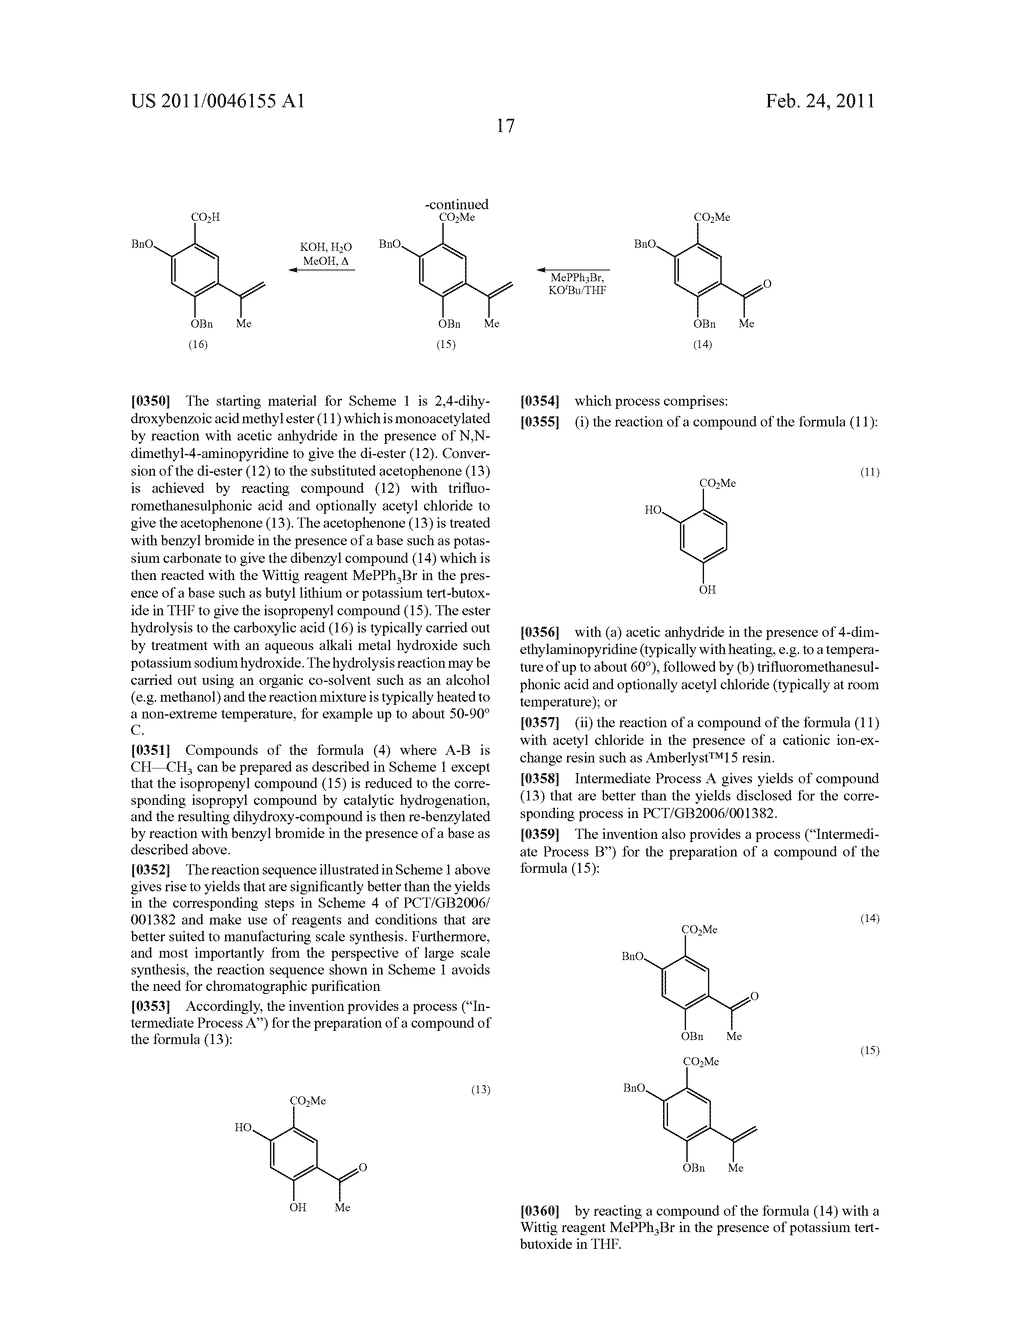 HYDROBENZAMIDE DERIVATIVES AS INHIBITORS OF HSP90 - diagram, schematic, and image 30